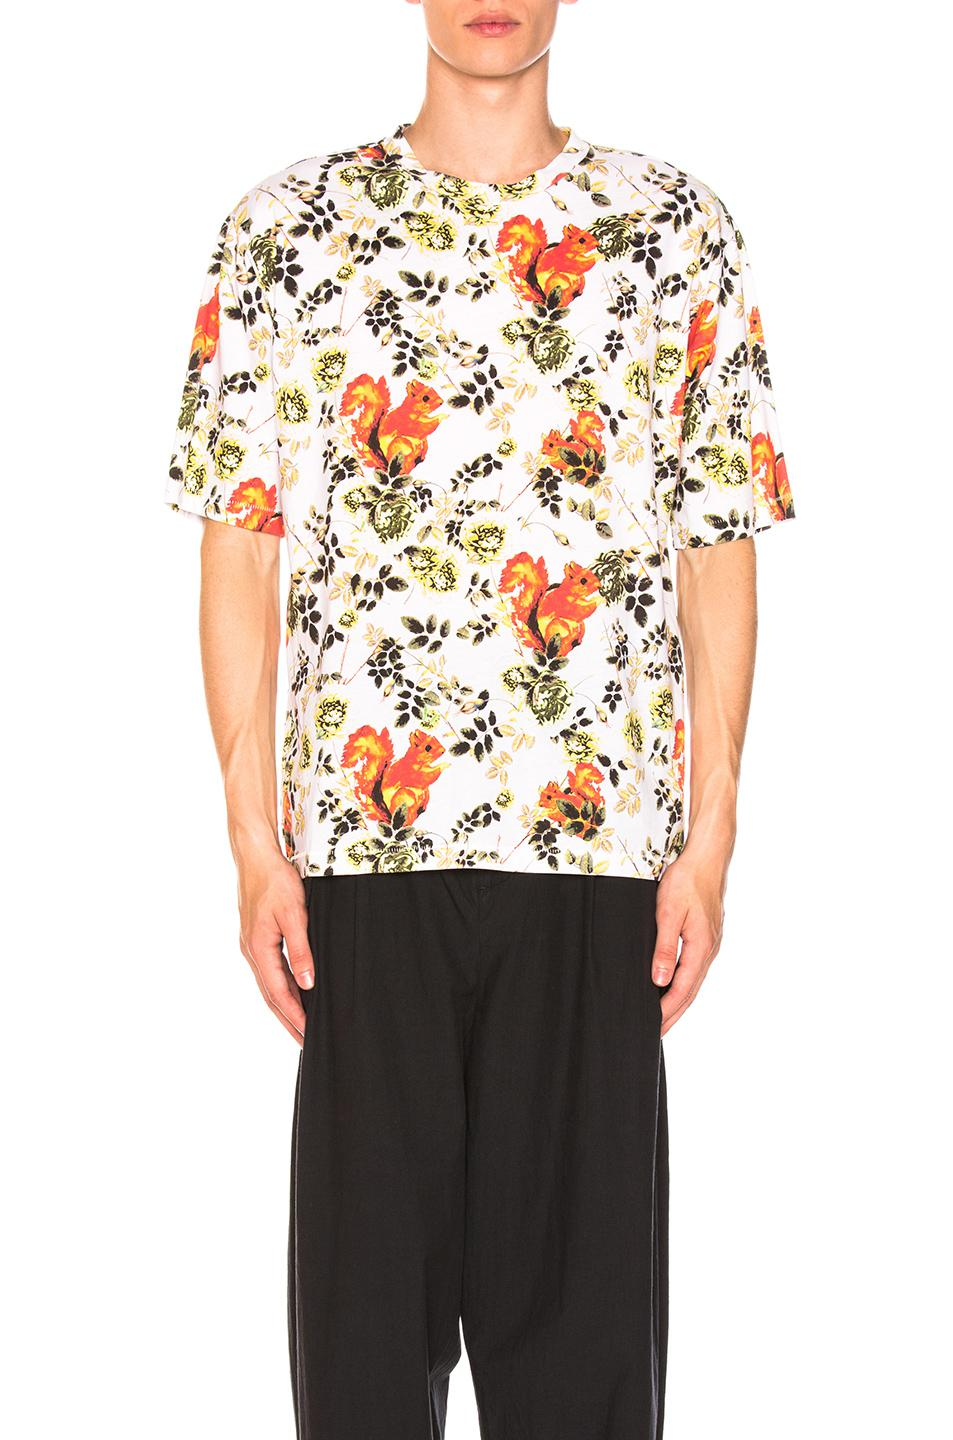 Box Cut Surreal Animal Print T-Shirt in Floral,White 3.1 Phillip Lim